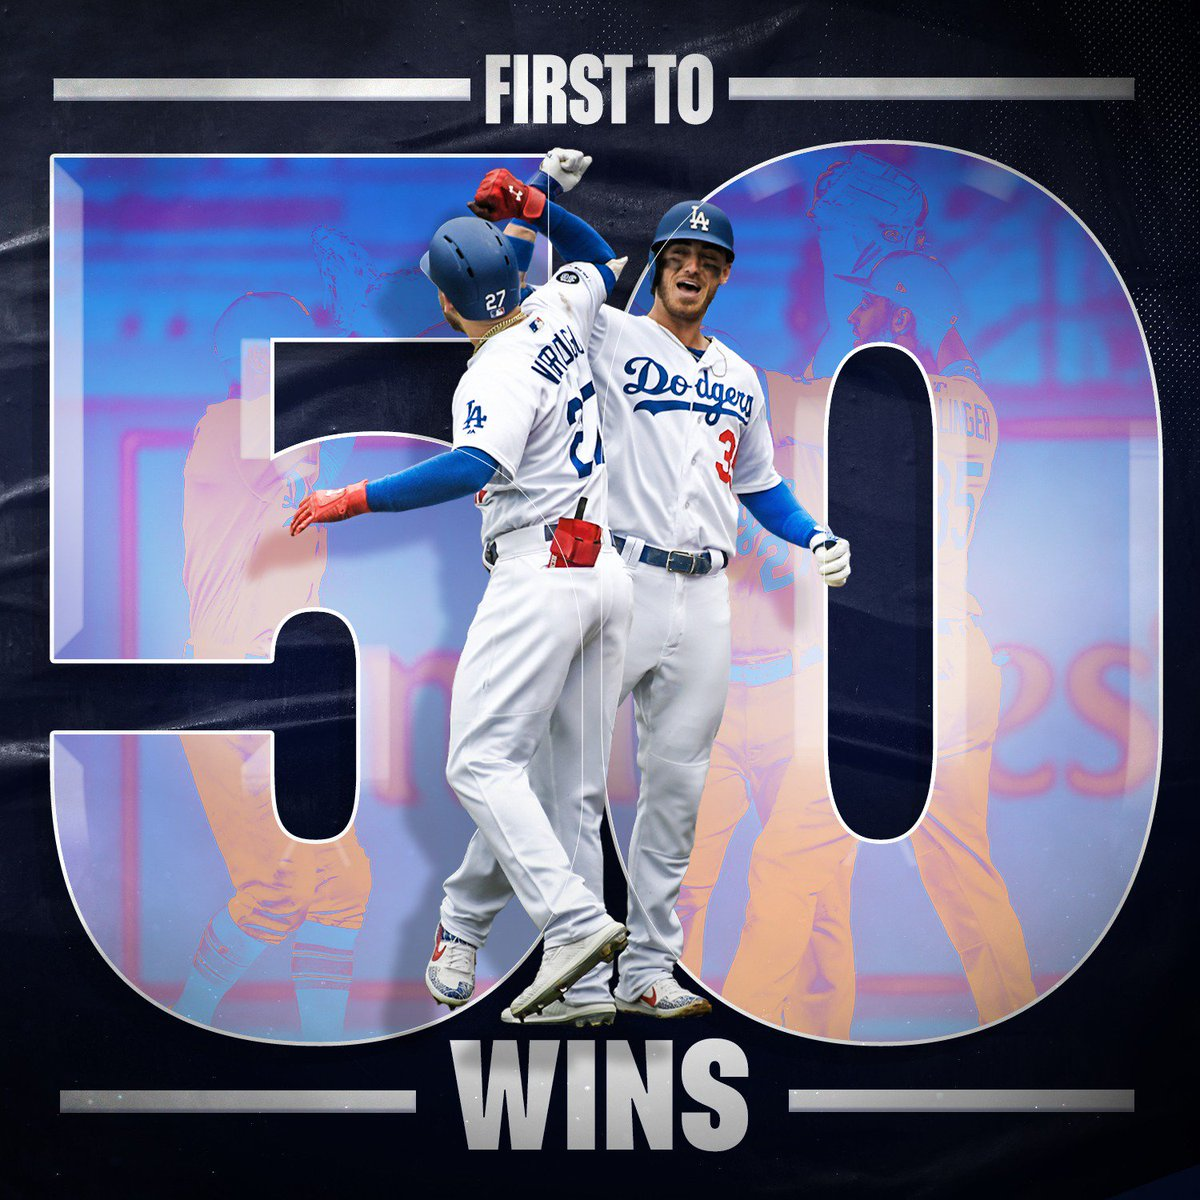 @MLB's photo on First to 50